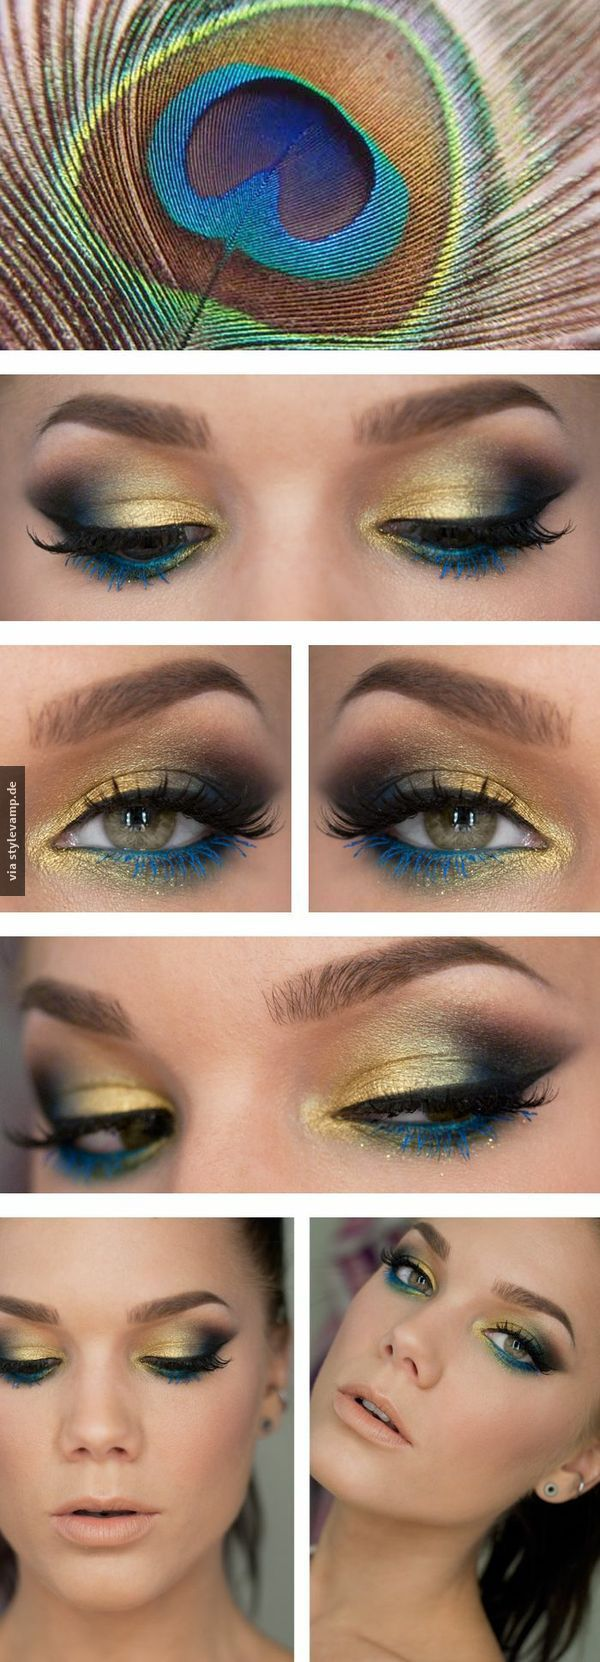 This make-up is like a peacock feather! Nice and you will not find it that way